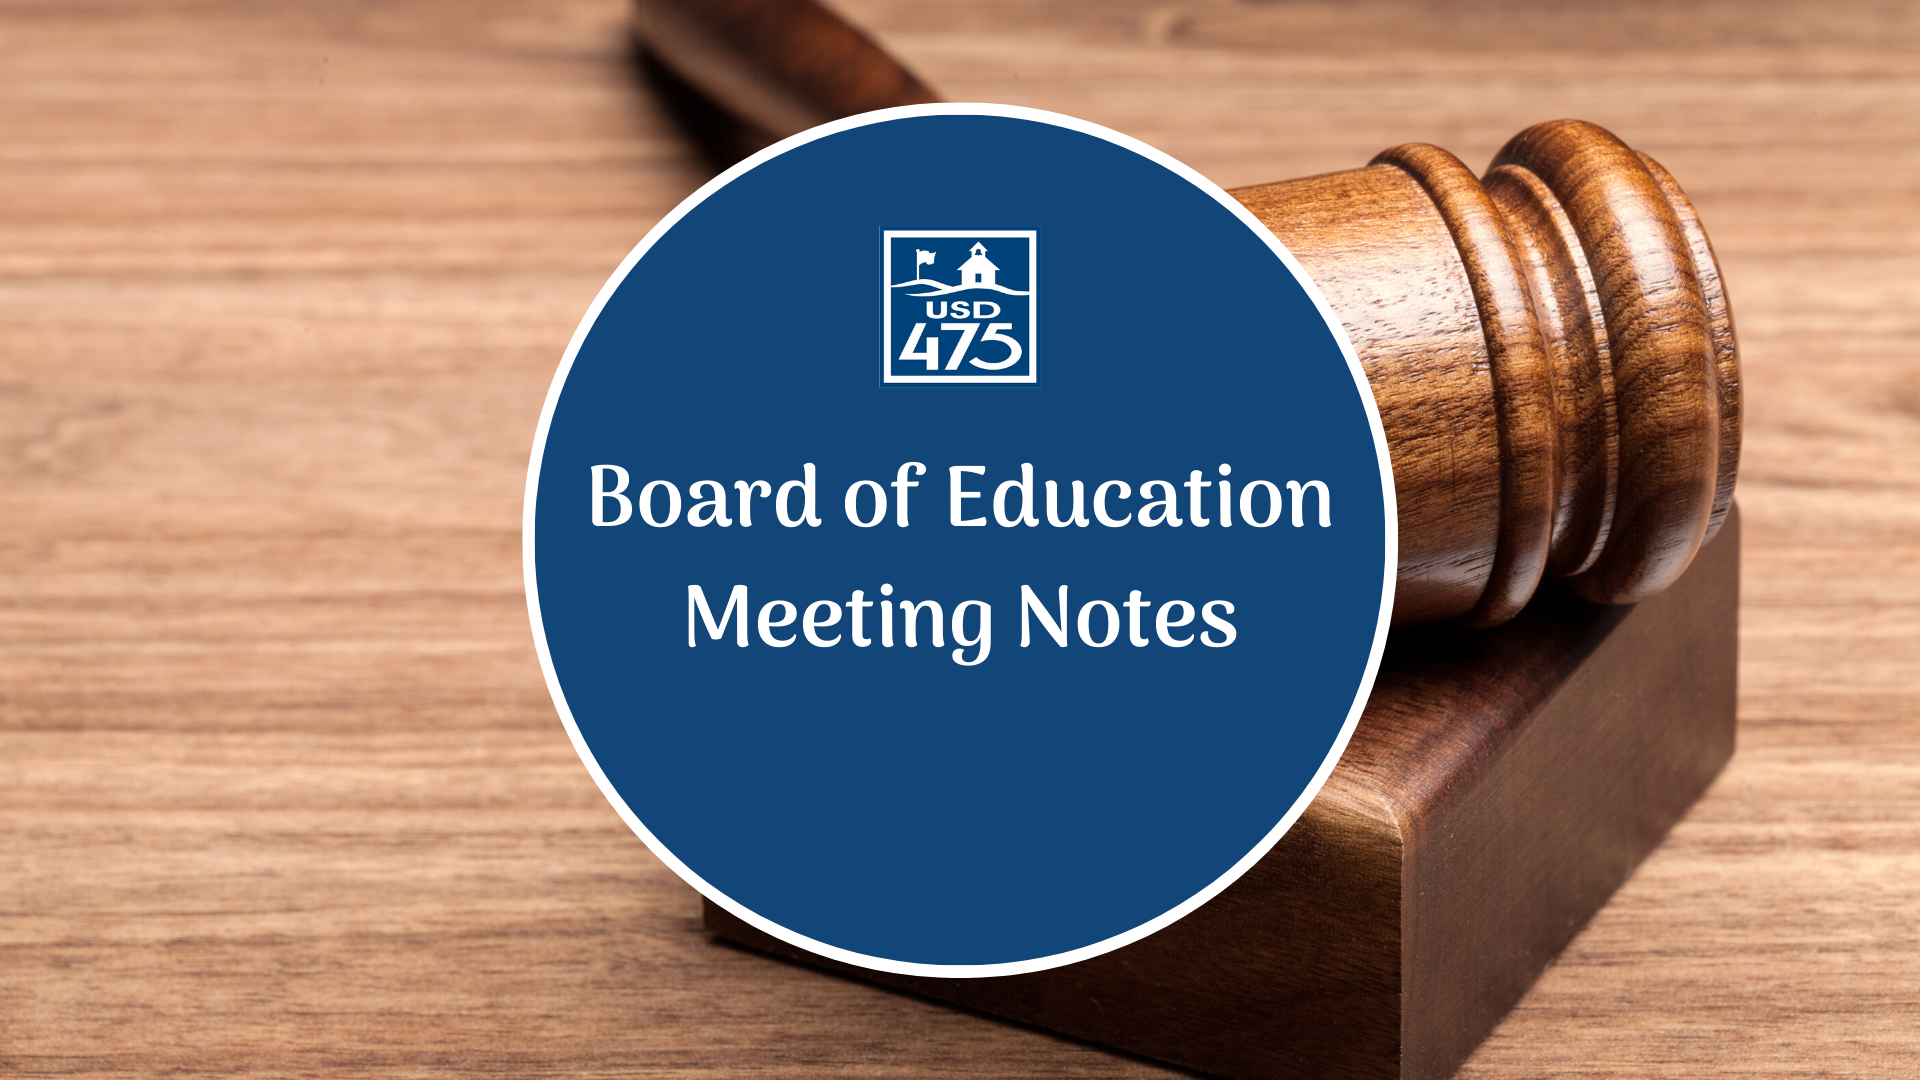 Board of Education Meeting Notes